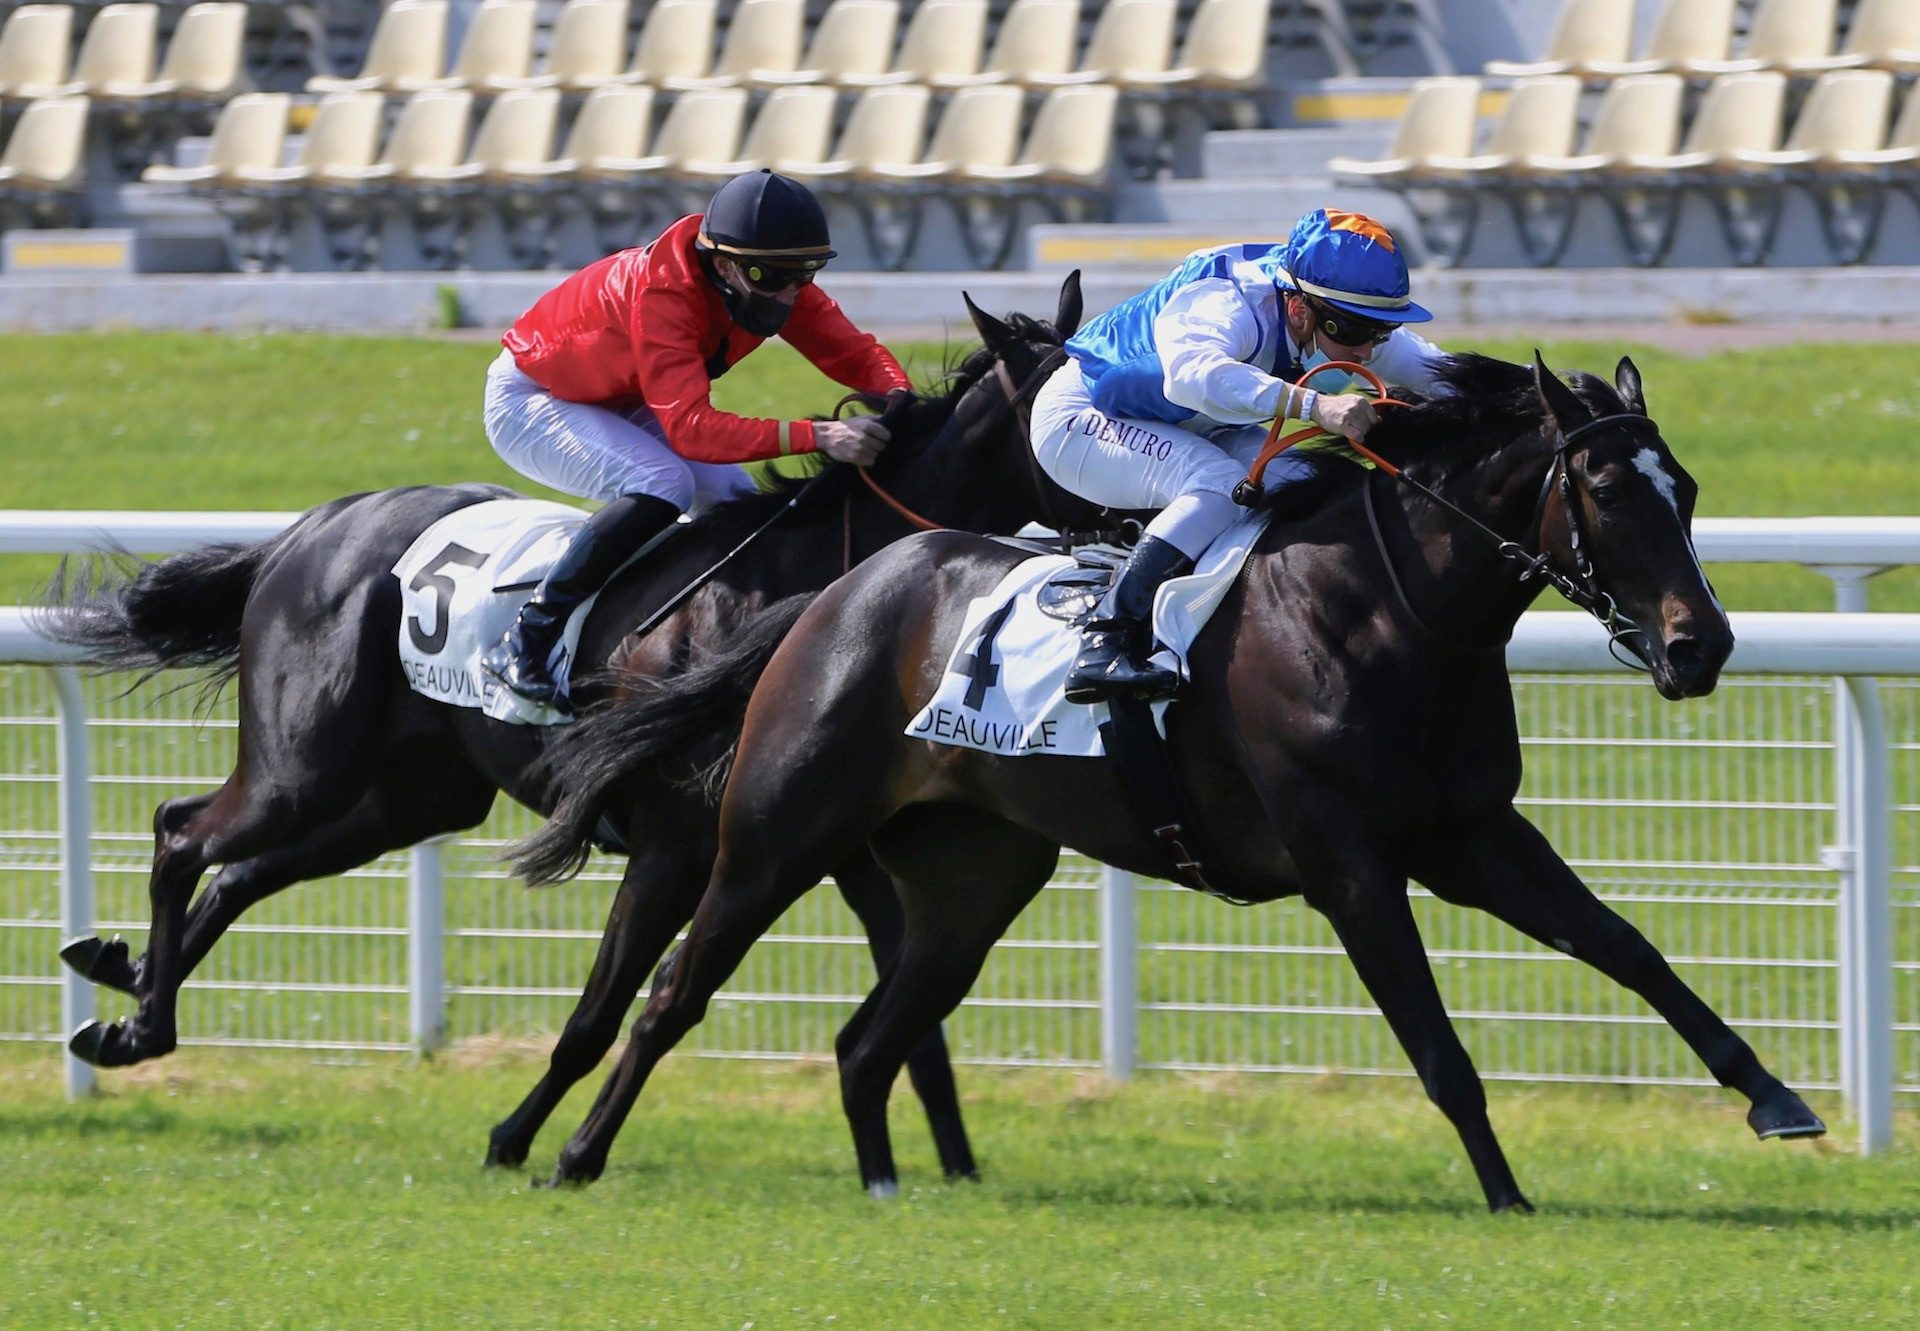 Feelie Win (Holy Roman Emperor) Wins On Debut At Deauville